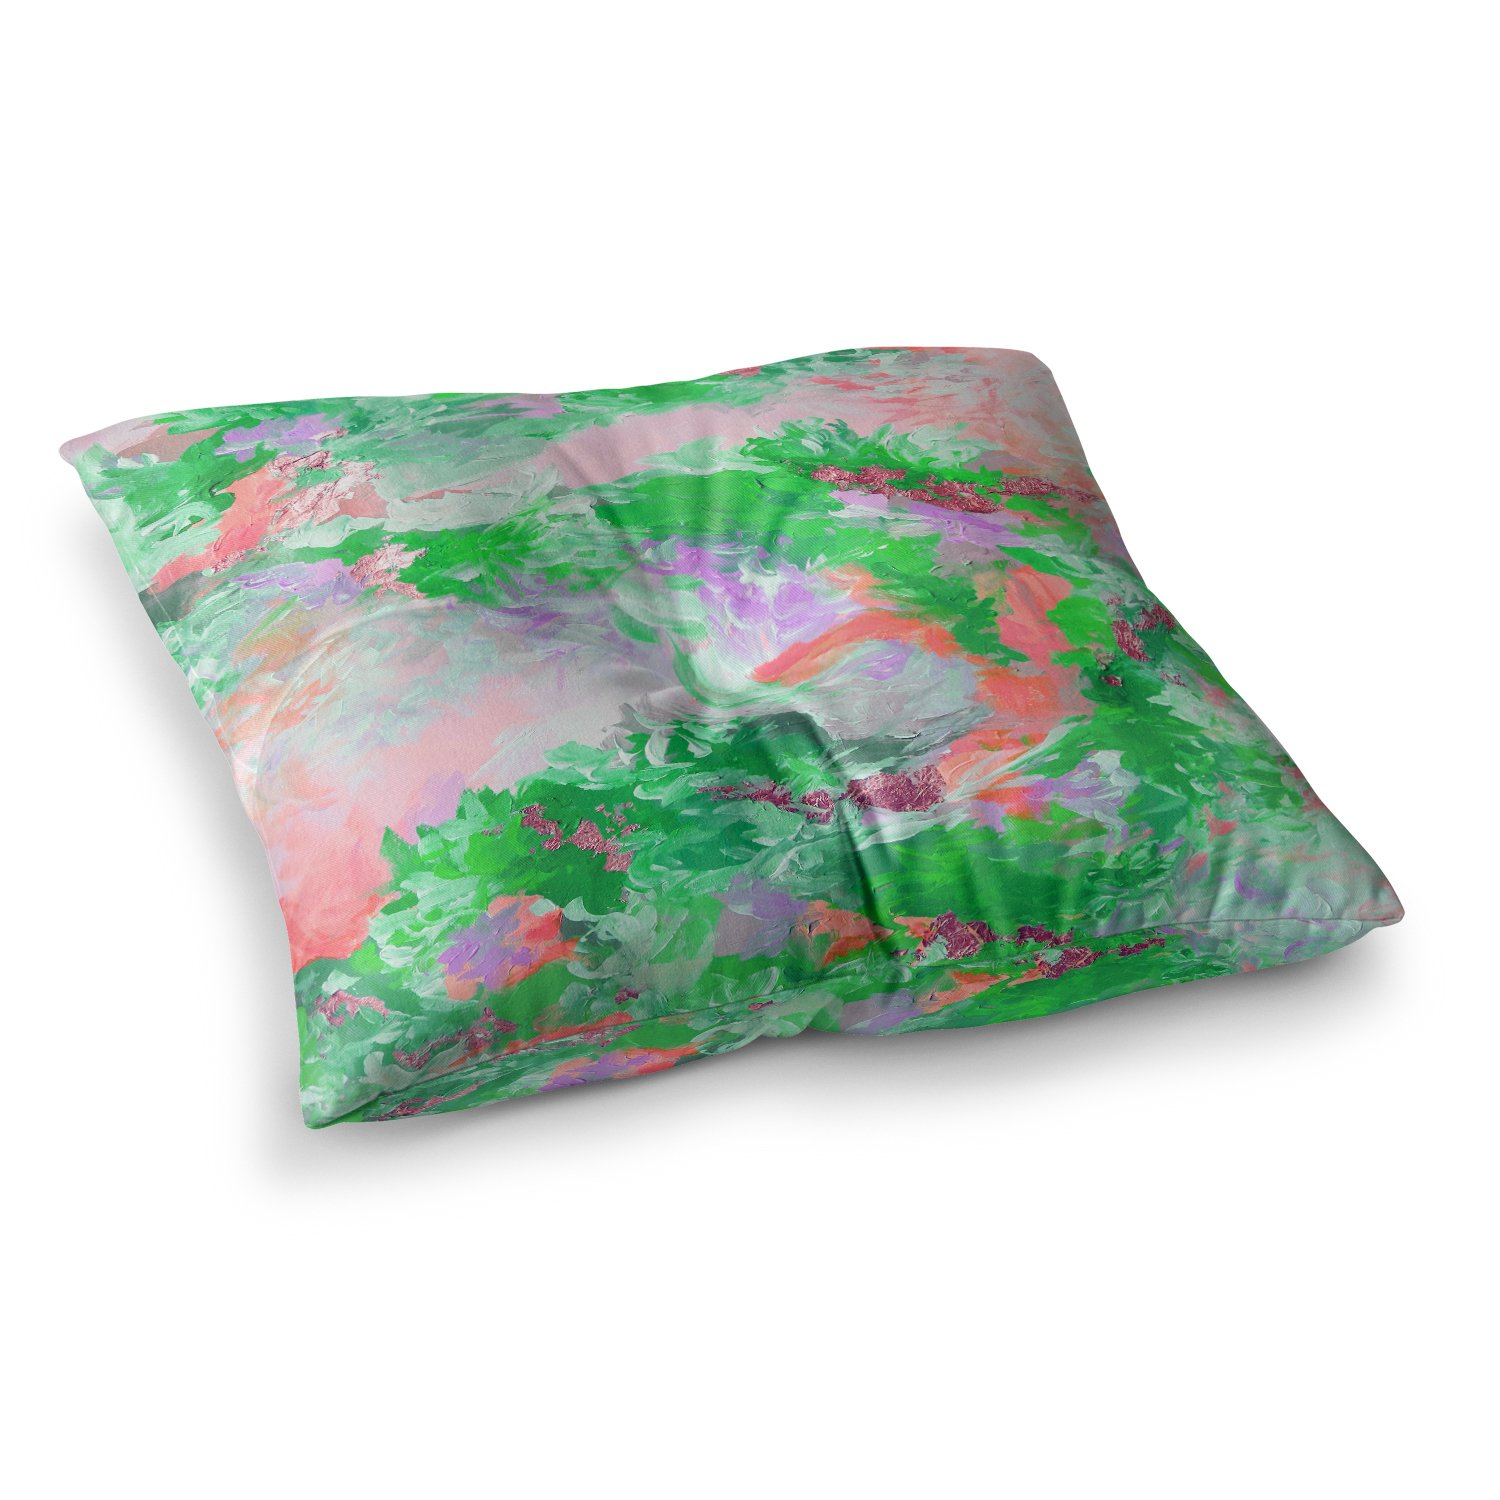 26 by 26 Kess InHouse EBI Emporium When We were Mermids 4 Green Pink Throw Pillow